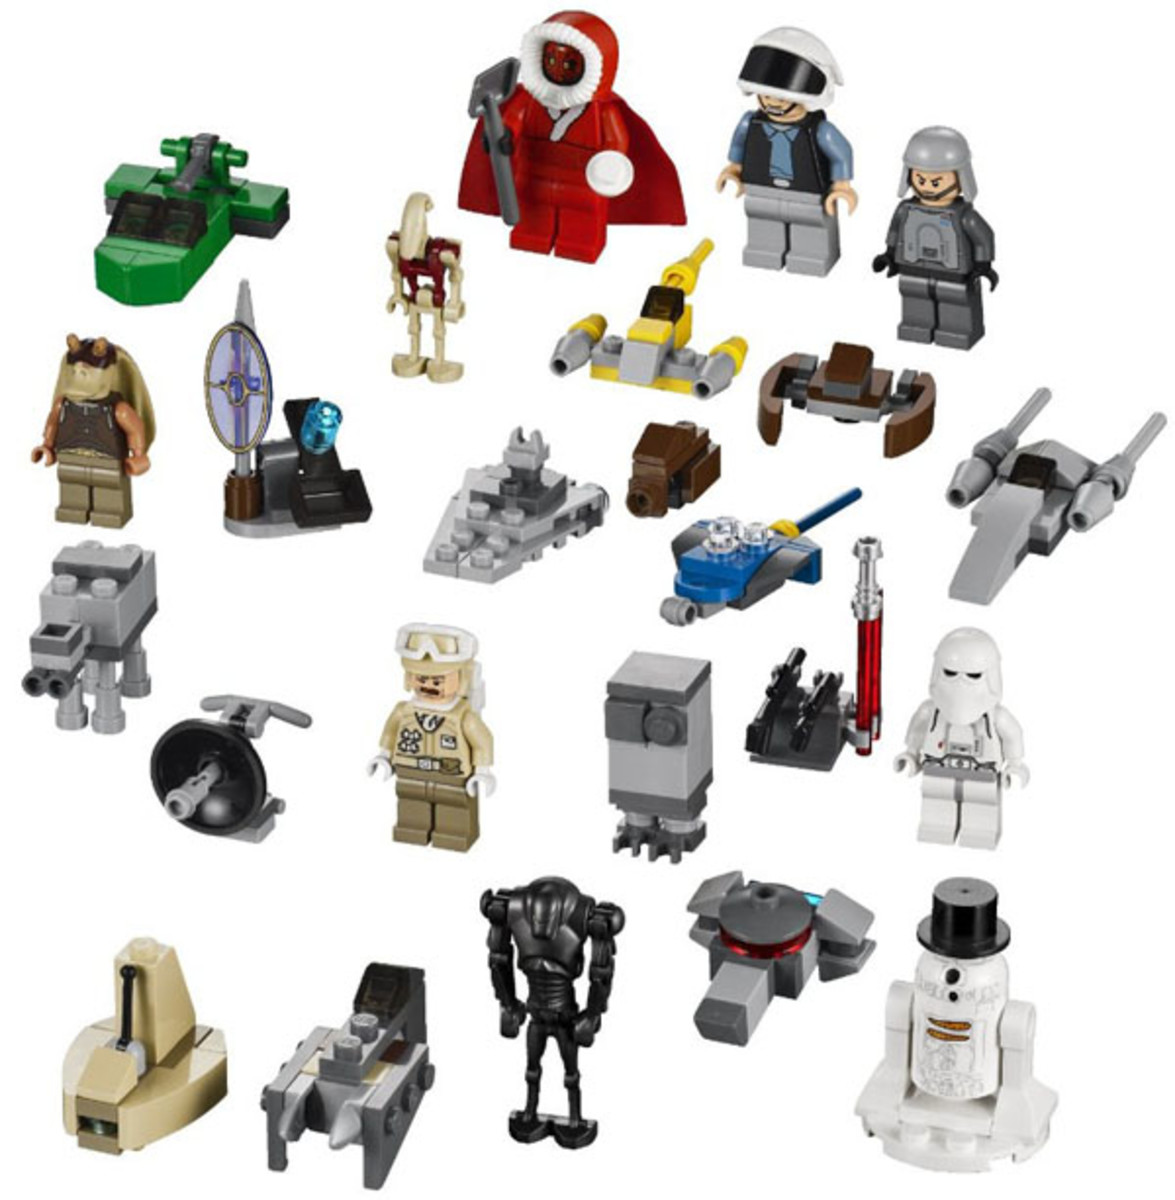 LEGO Star Wars Advent Calendar 9509 Sets